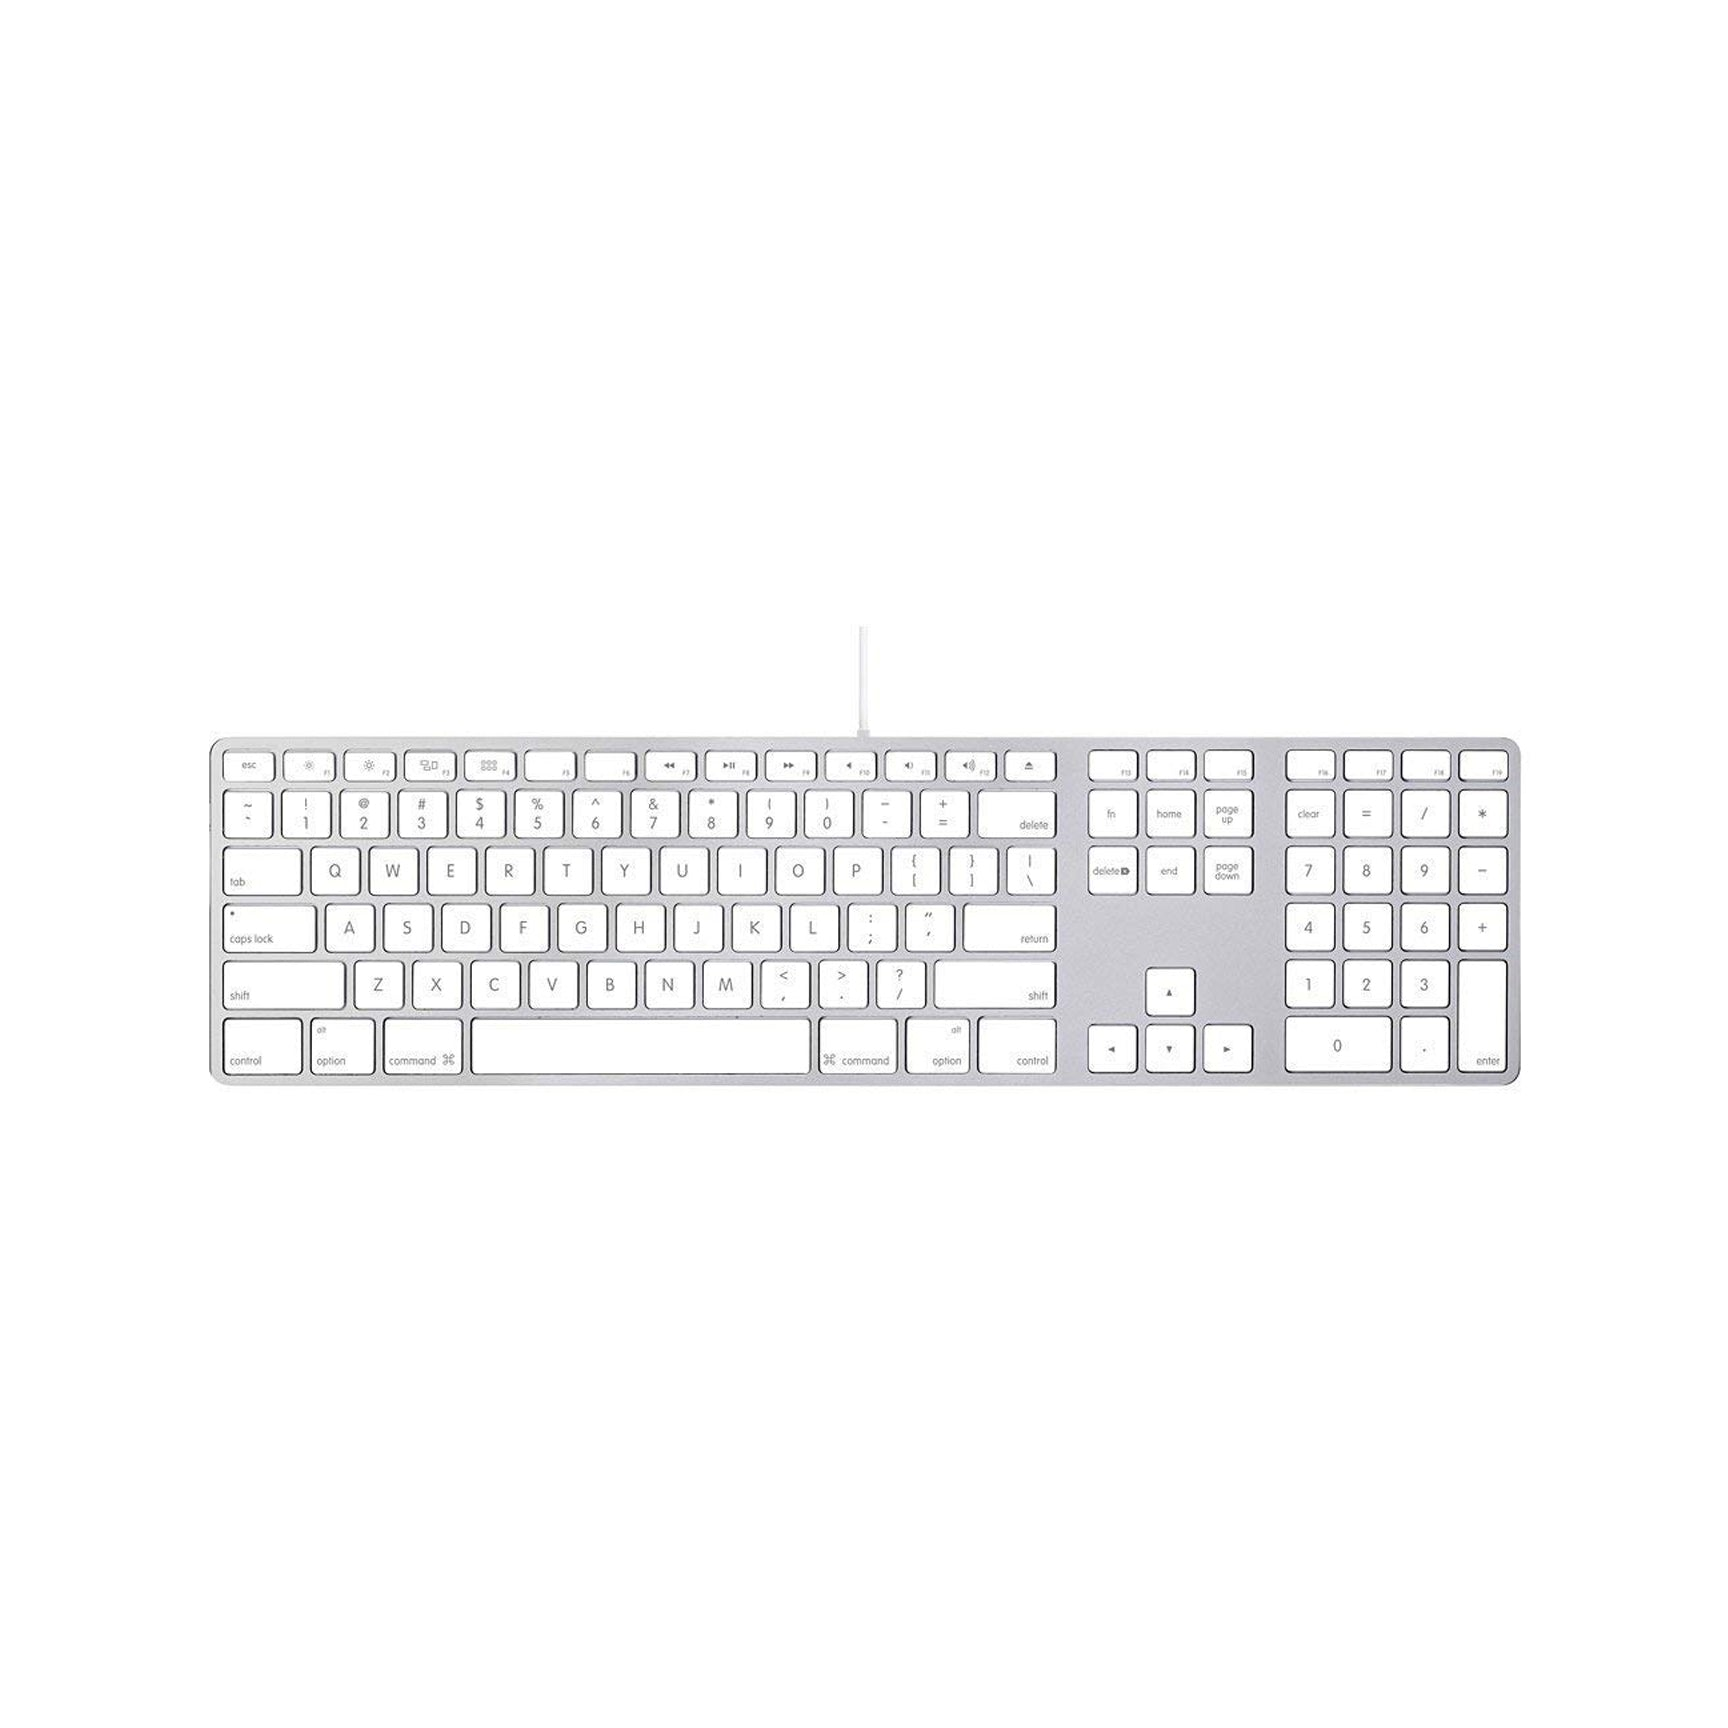 Apple USB Keyboard with 10 Key